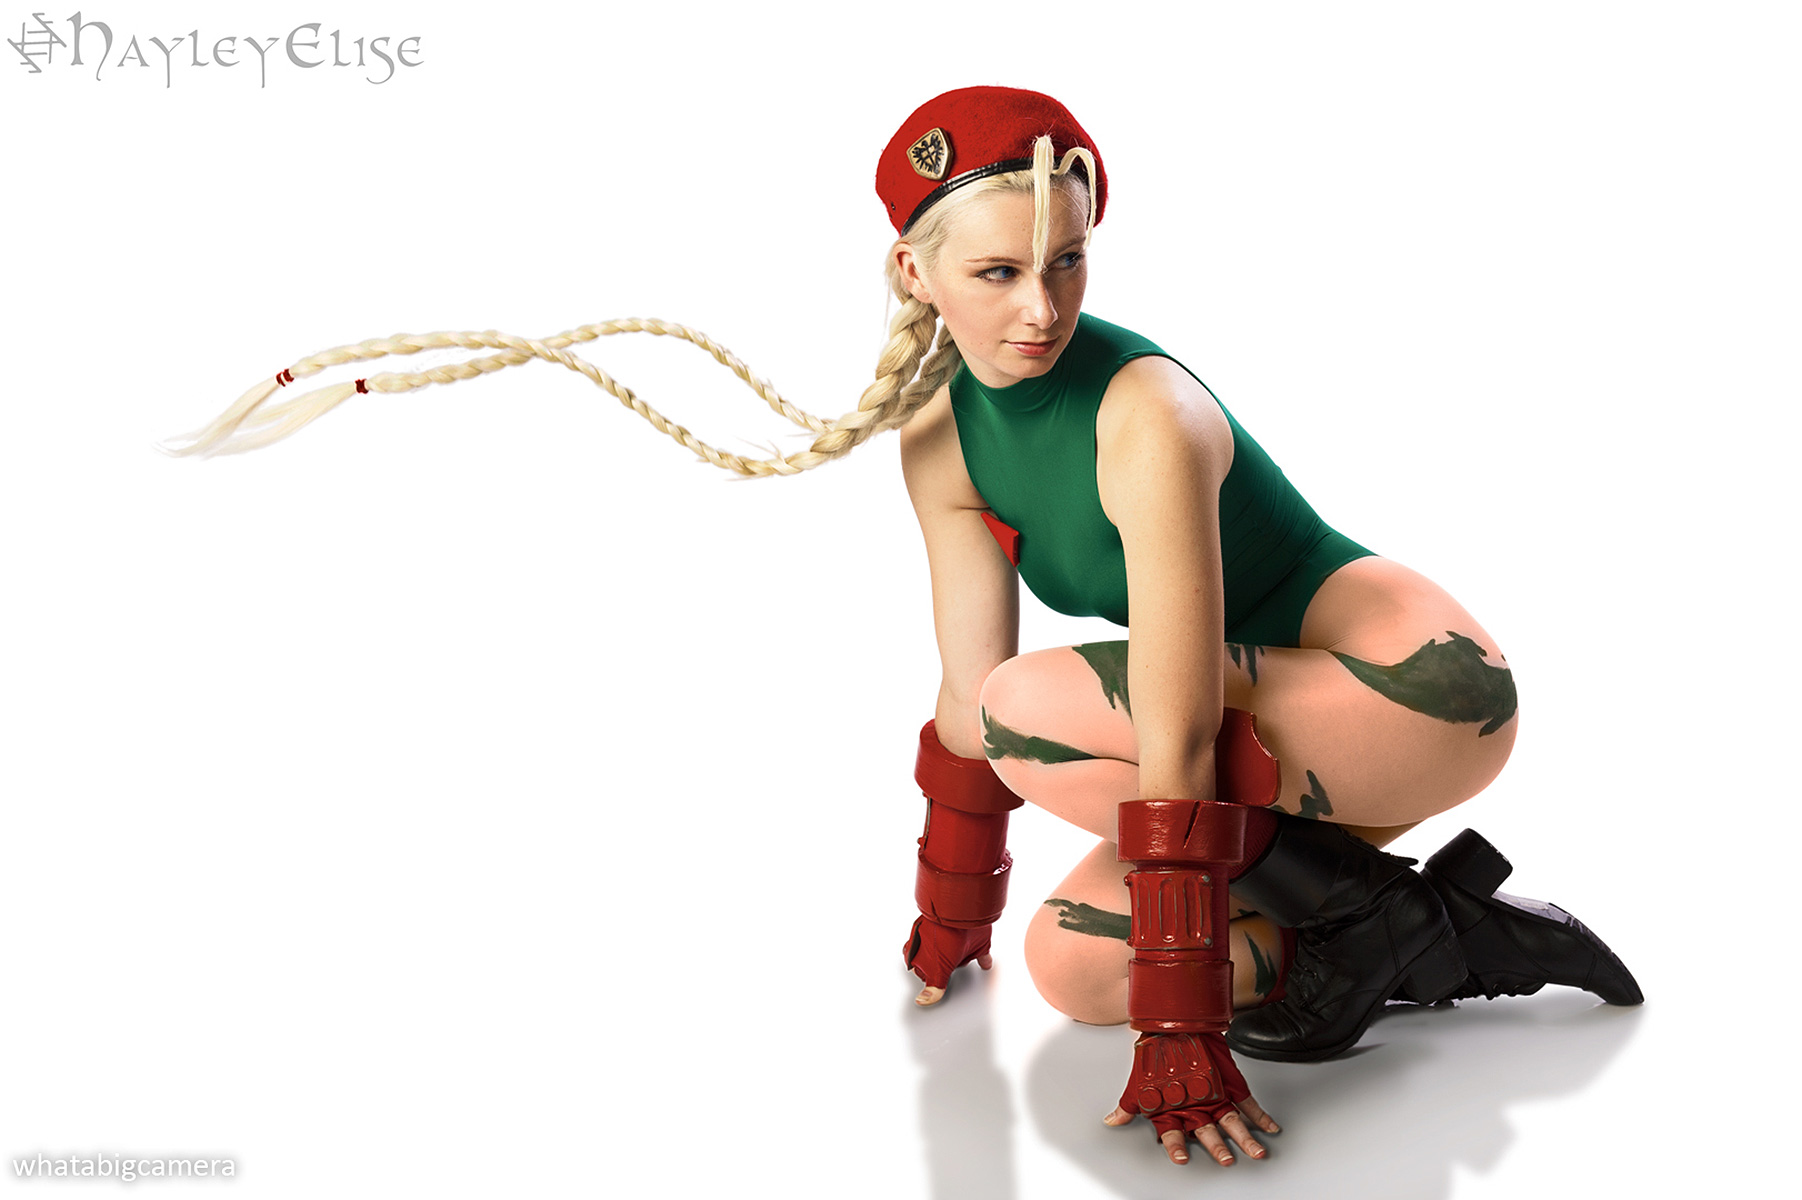 Cammy White cosplay from Capcom's Street Fighter video game